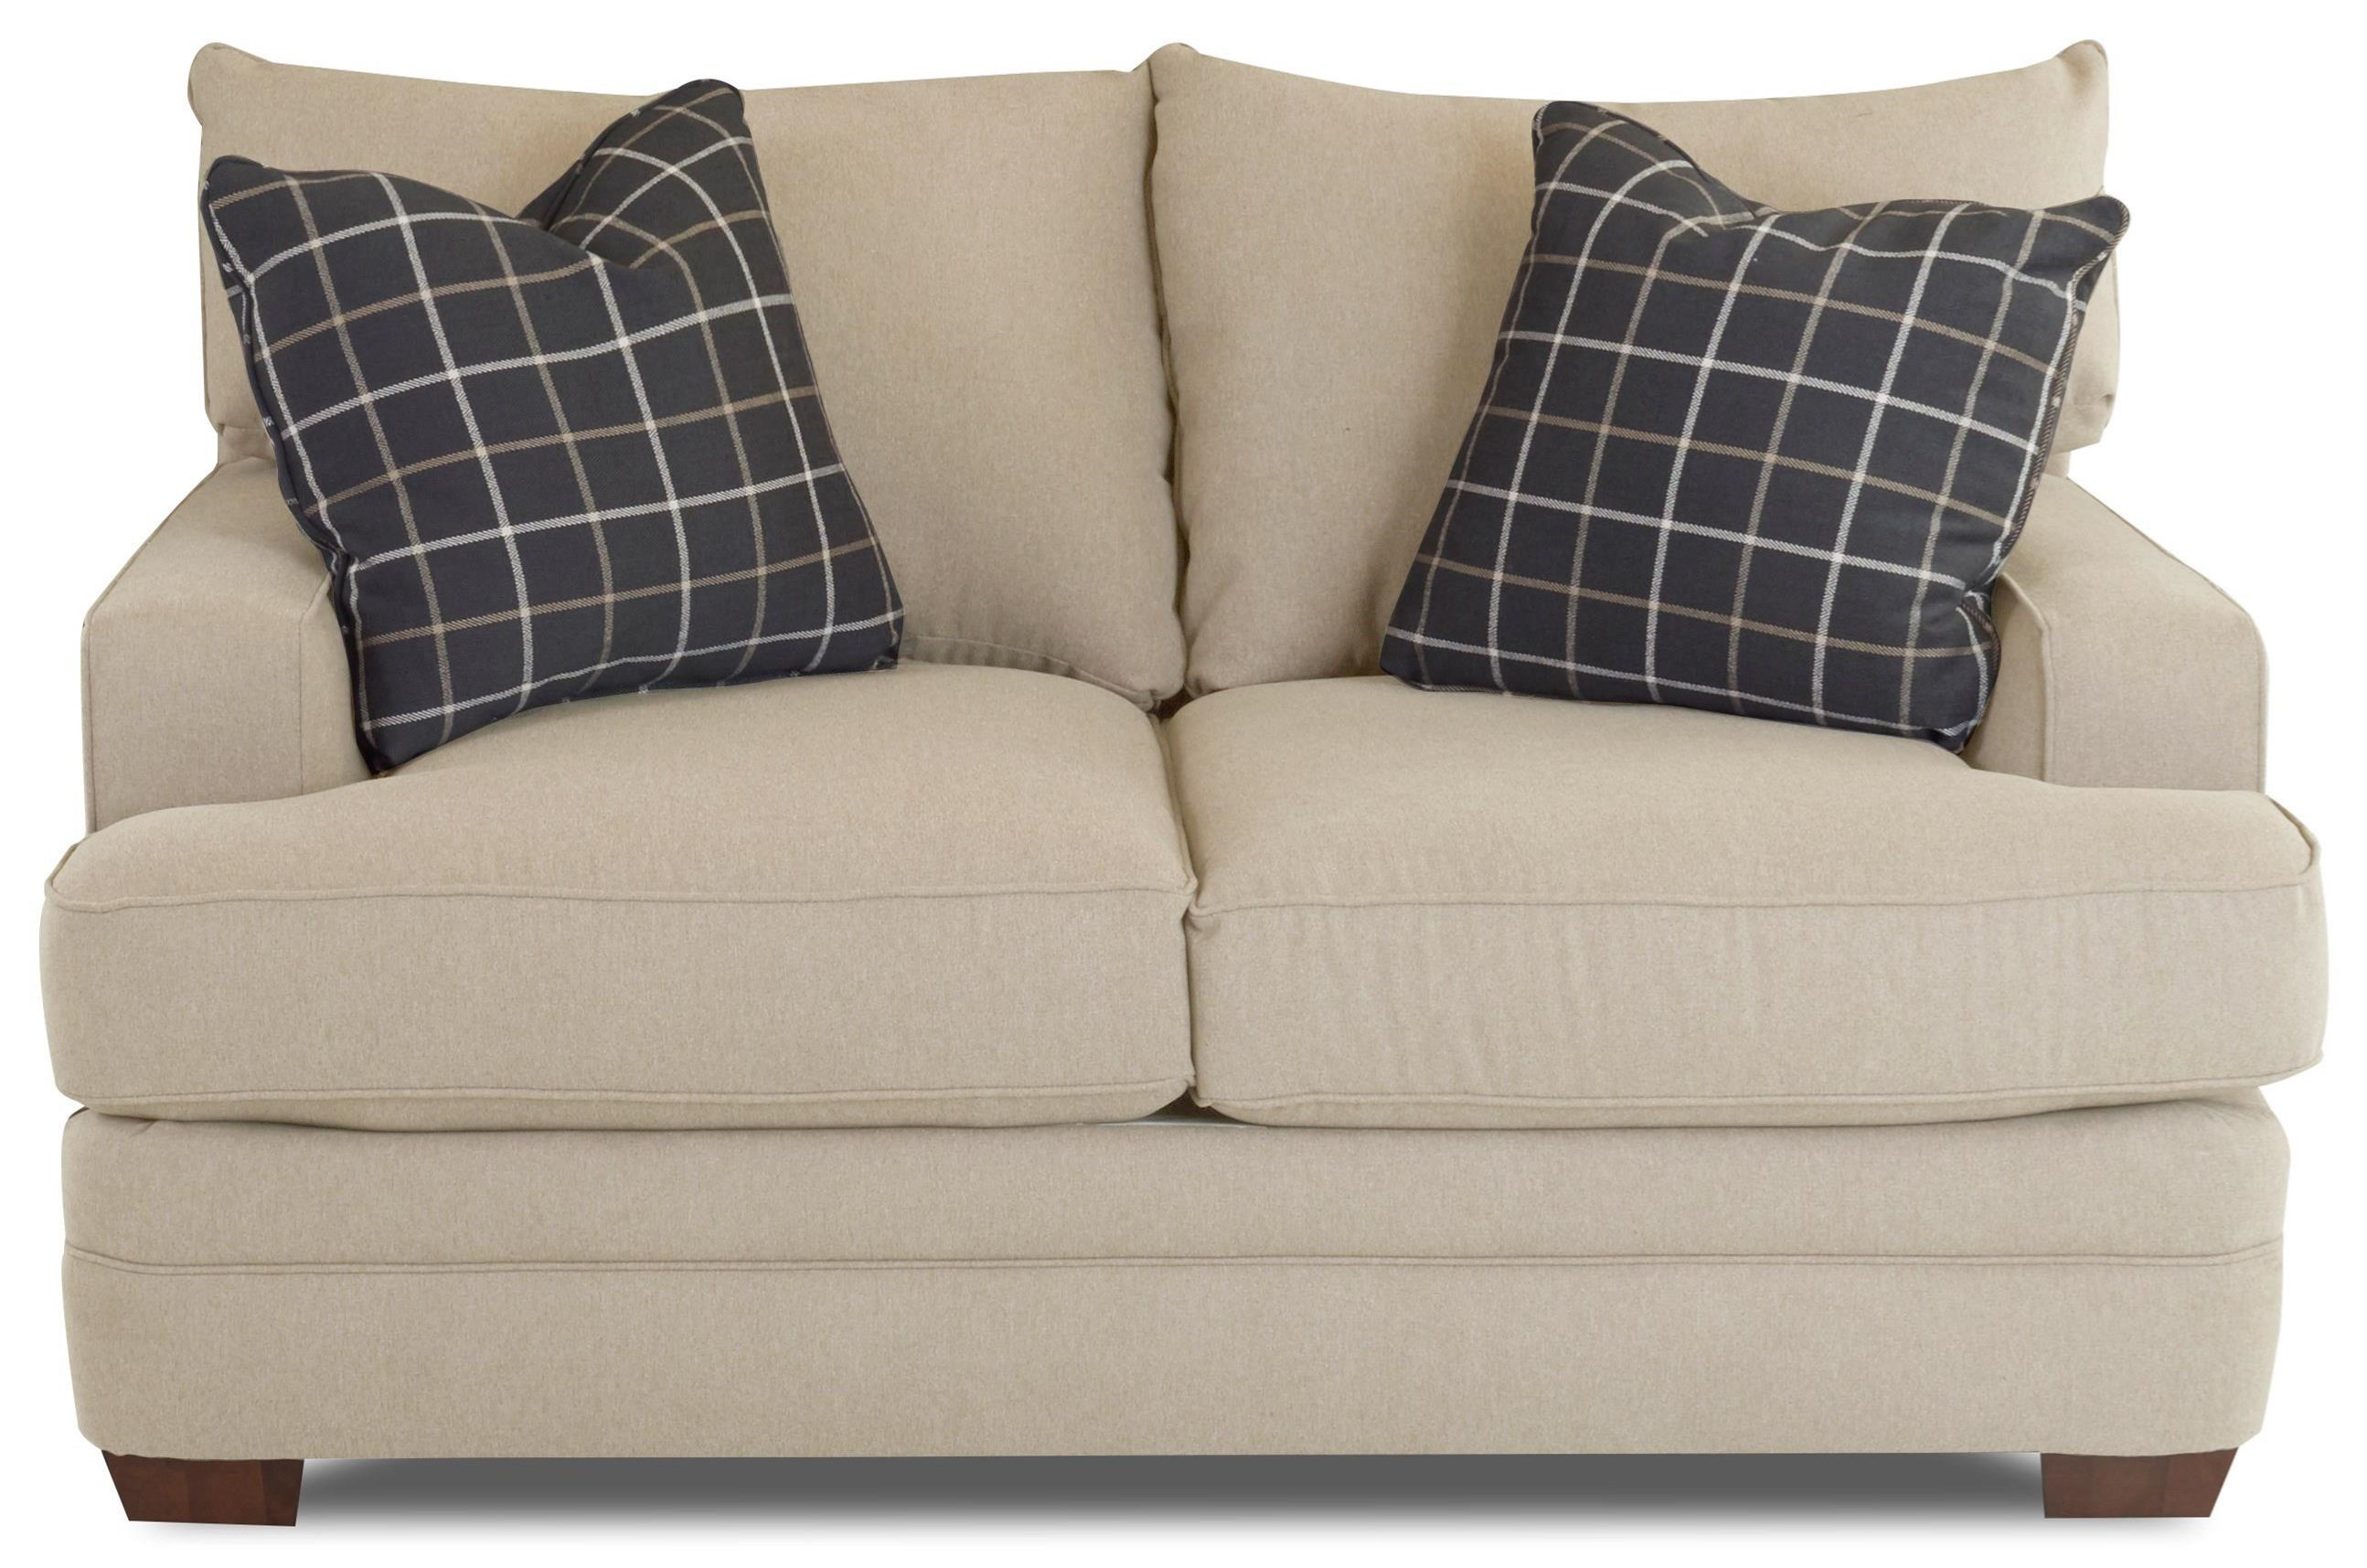 Chadwick Loveseat by Klaussner at Johnny Janosik